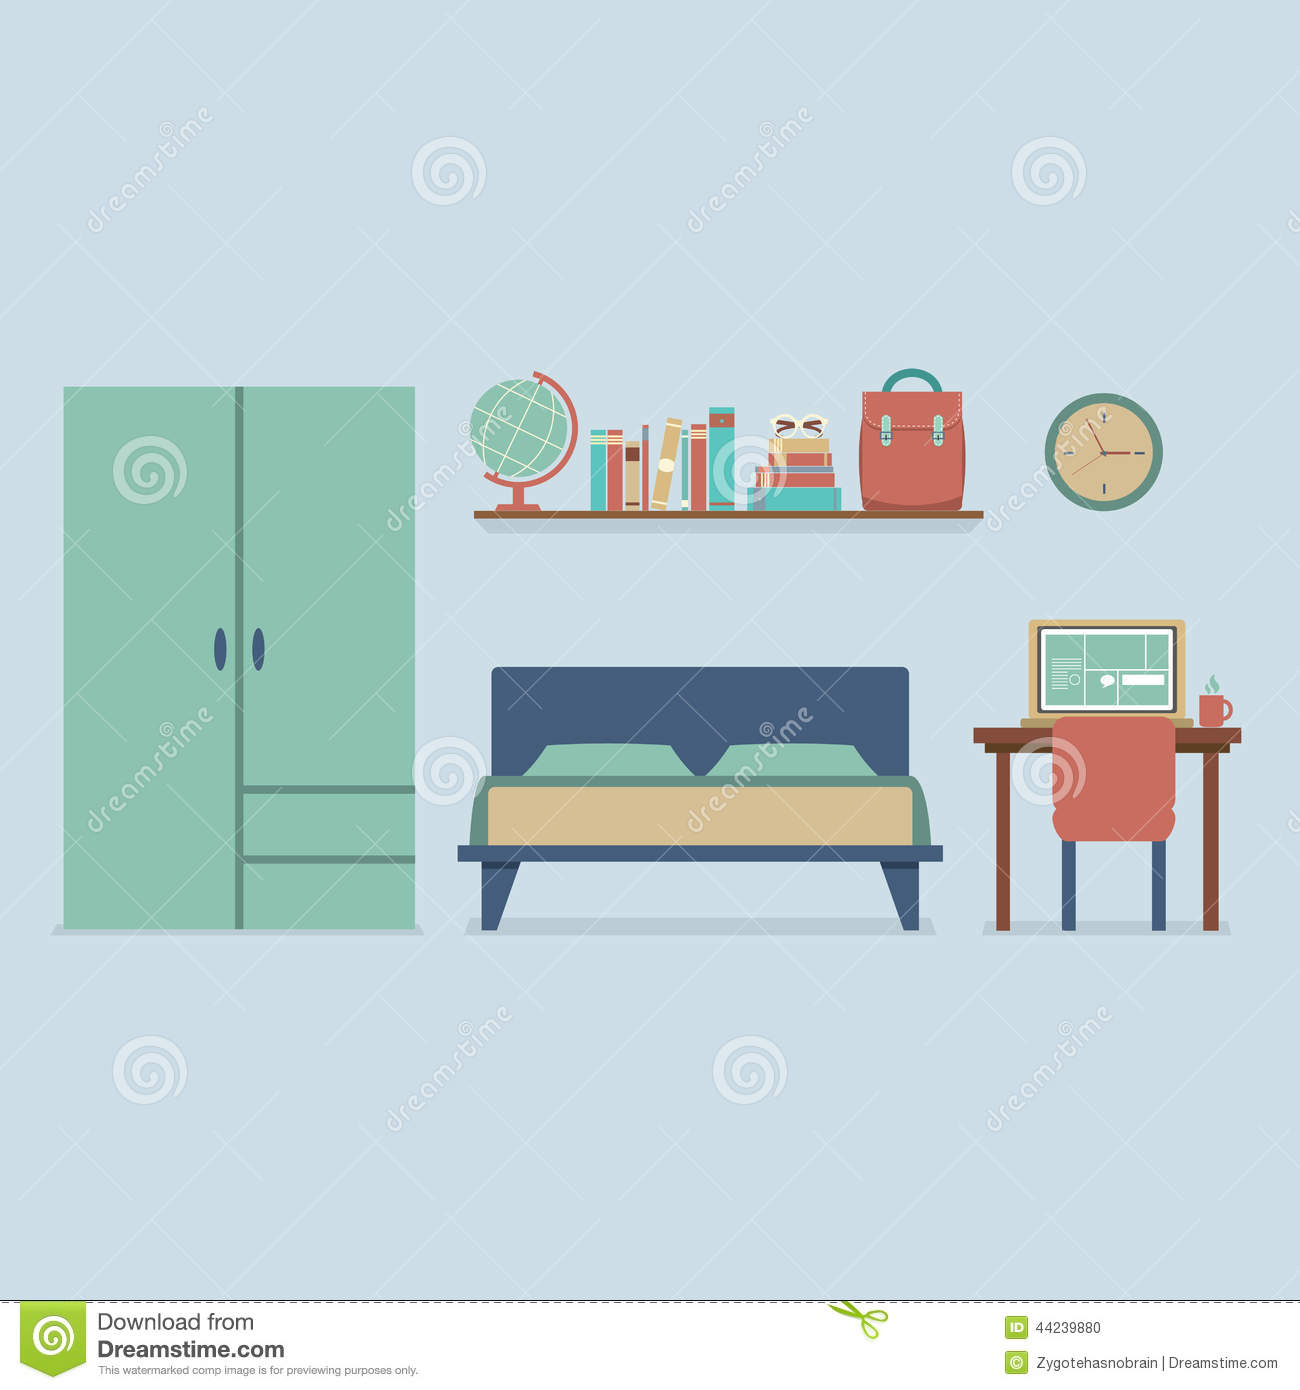 Flat design bedroom interior stock vector image 44239880 for Interior design images vector